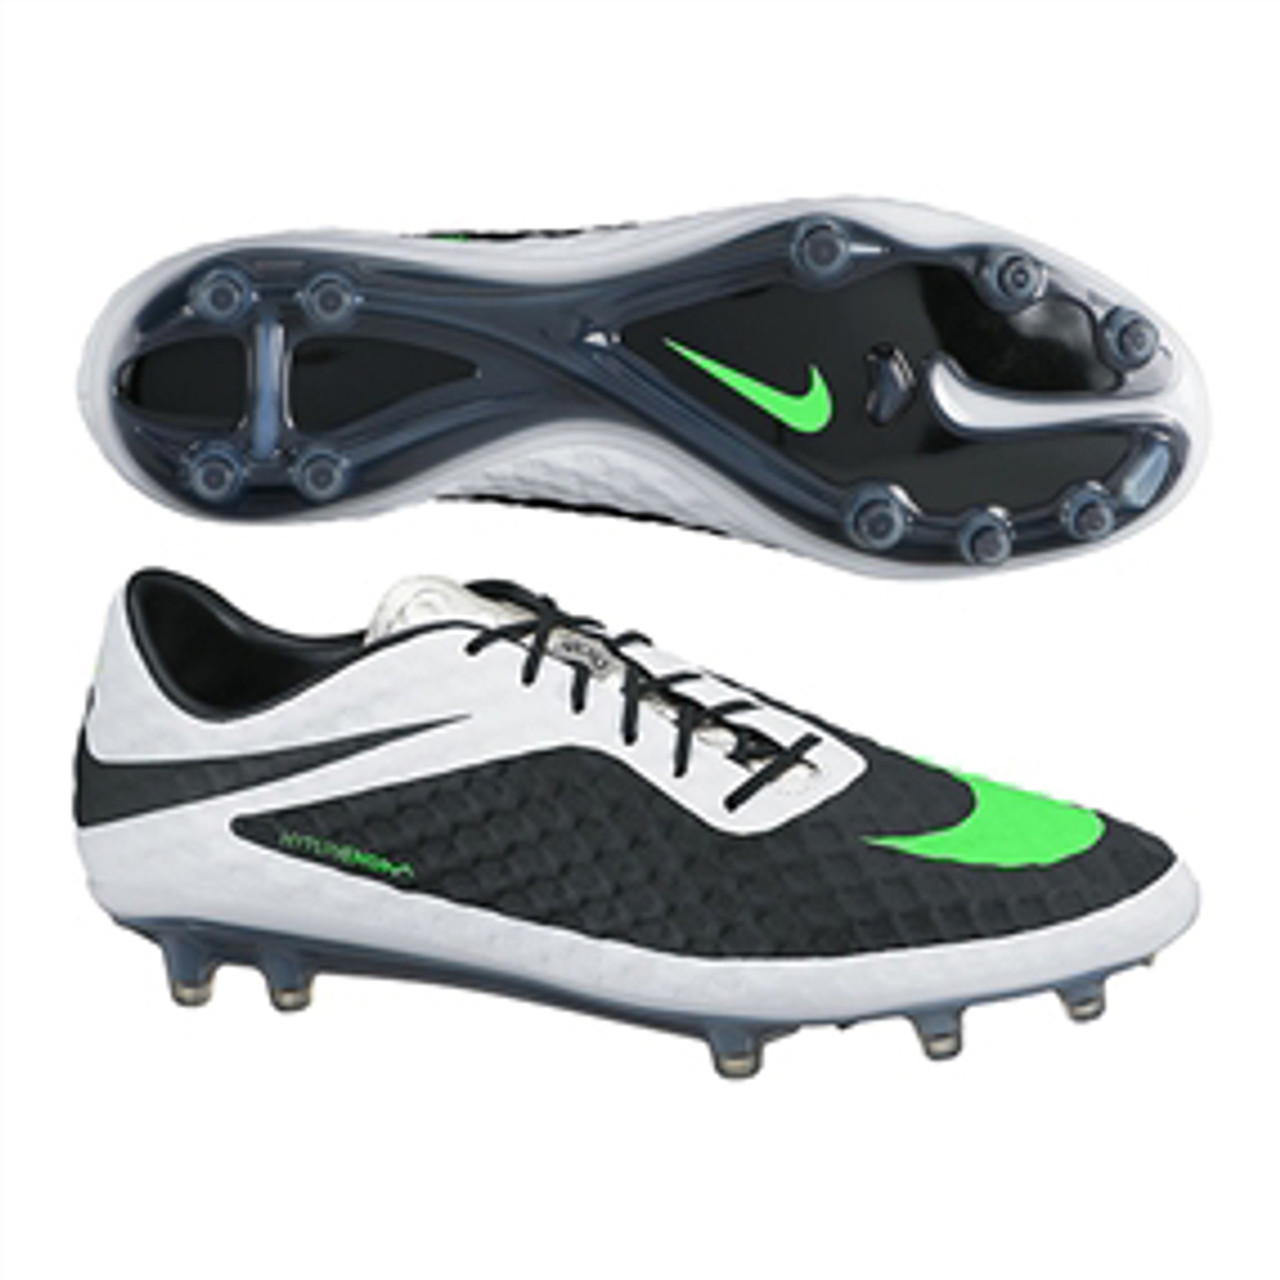 official photos 861a4 52316 NIKE HYPERVENOM PHANTOM FG white/black/neo green